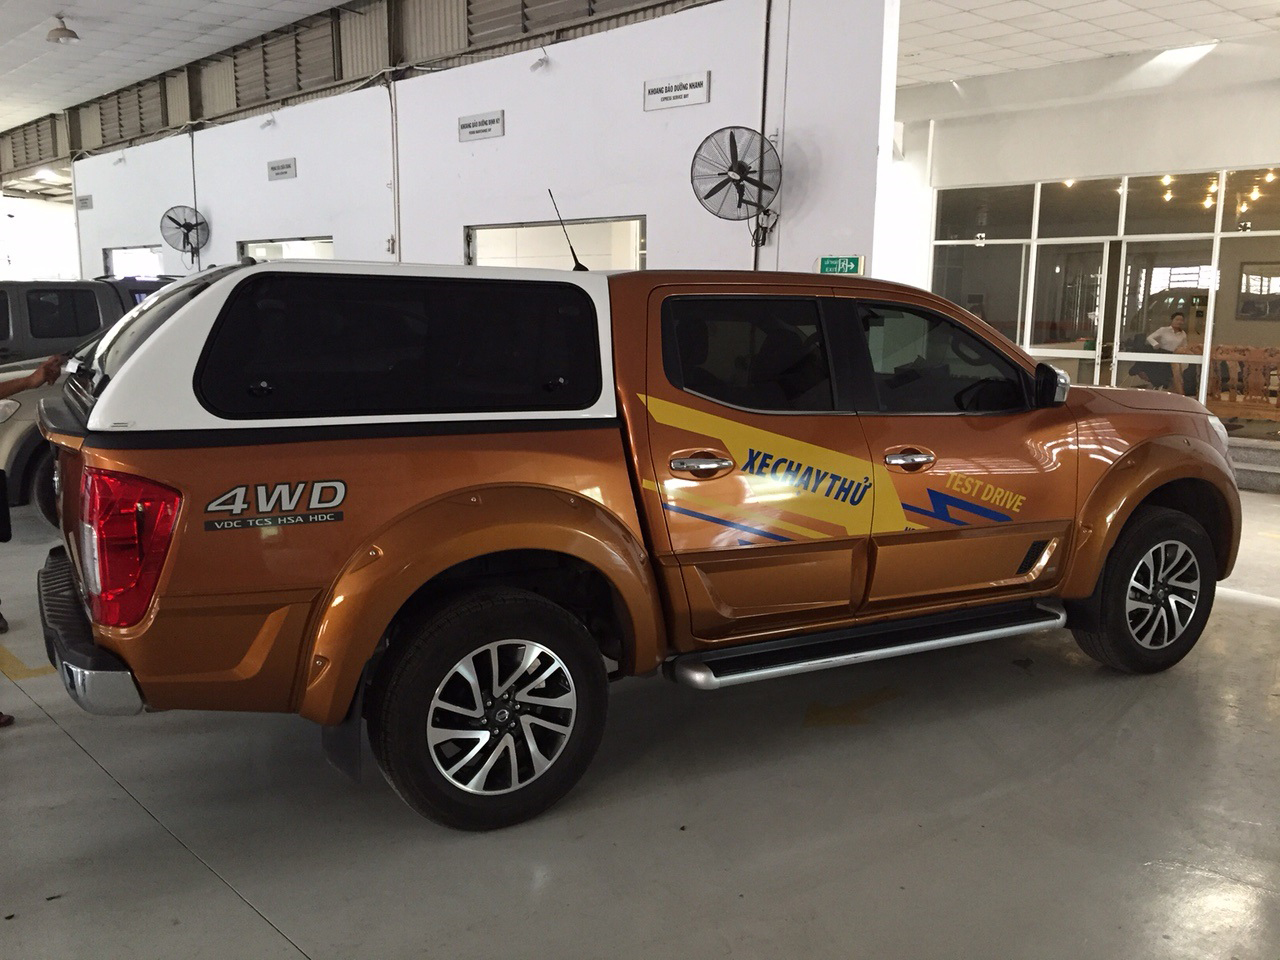 Karuna canopies for New Nissan Navara NP300 exclusively distributed by Nissan Vietnam for Vietnam Market & Karuna